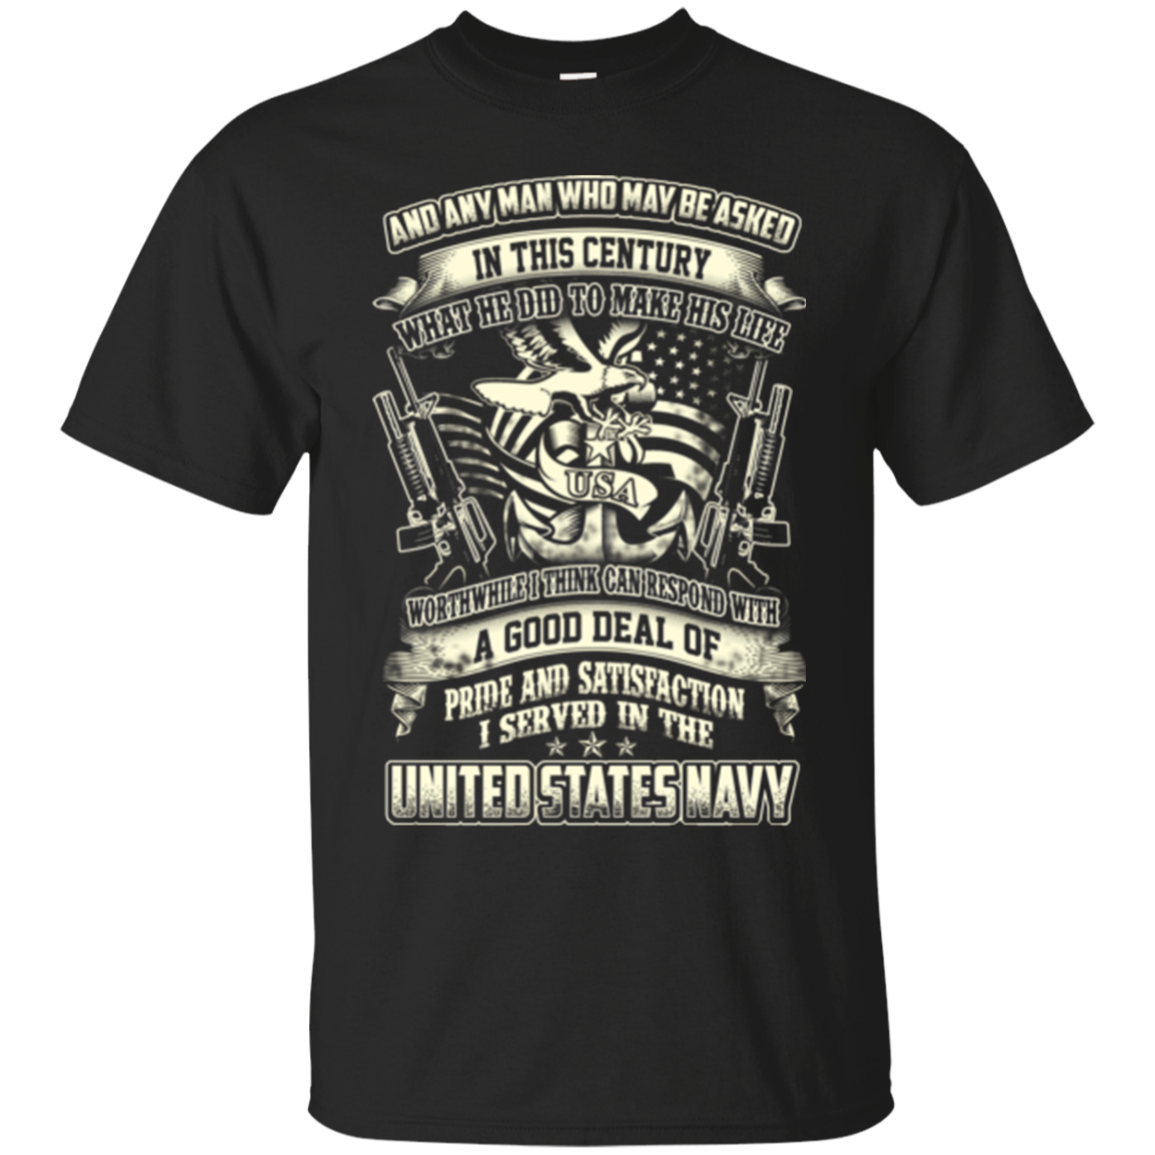 A Good Deal Of Pride And Satiseaction I Served In The United States Navy Shirts Hoodies Sweatshirts